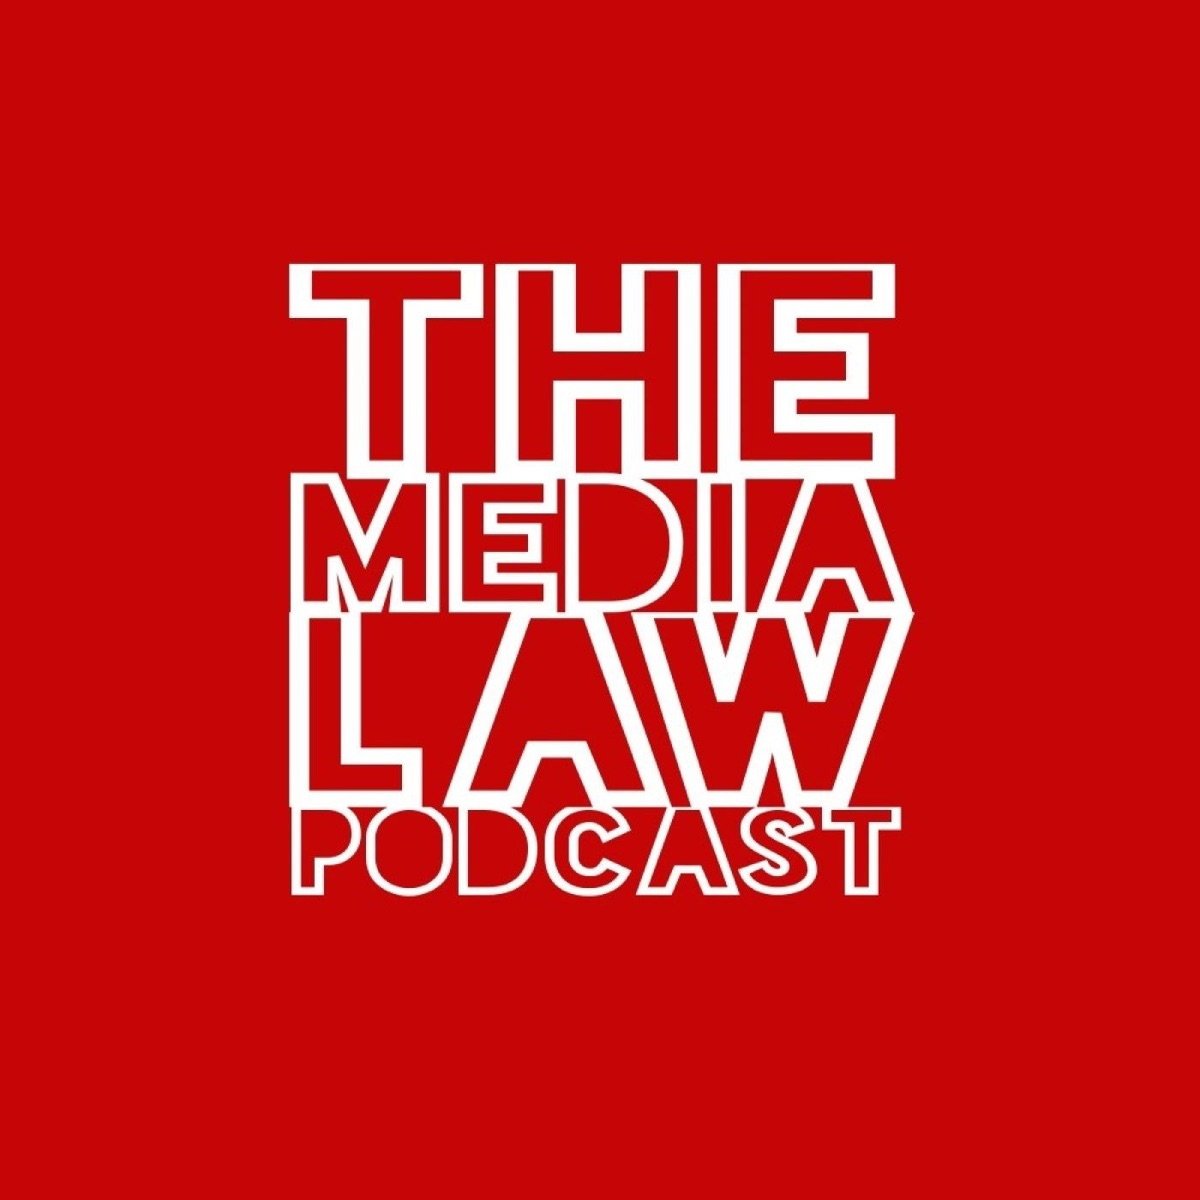 The Media Law Podcast